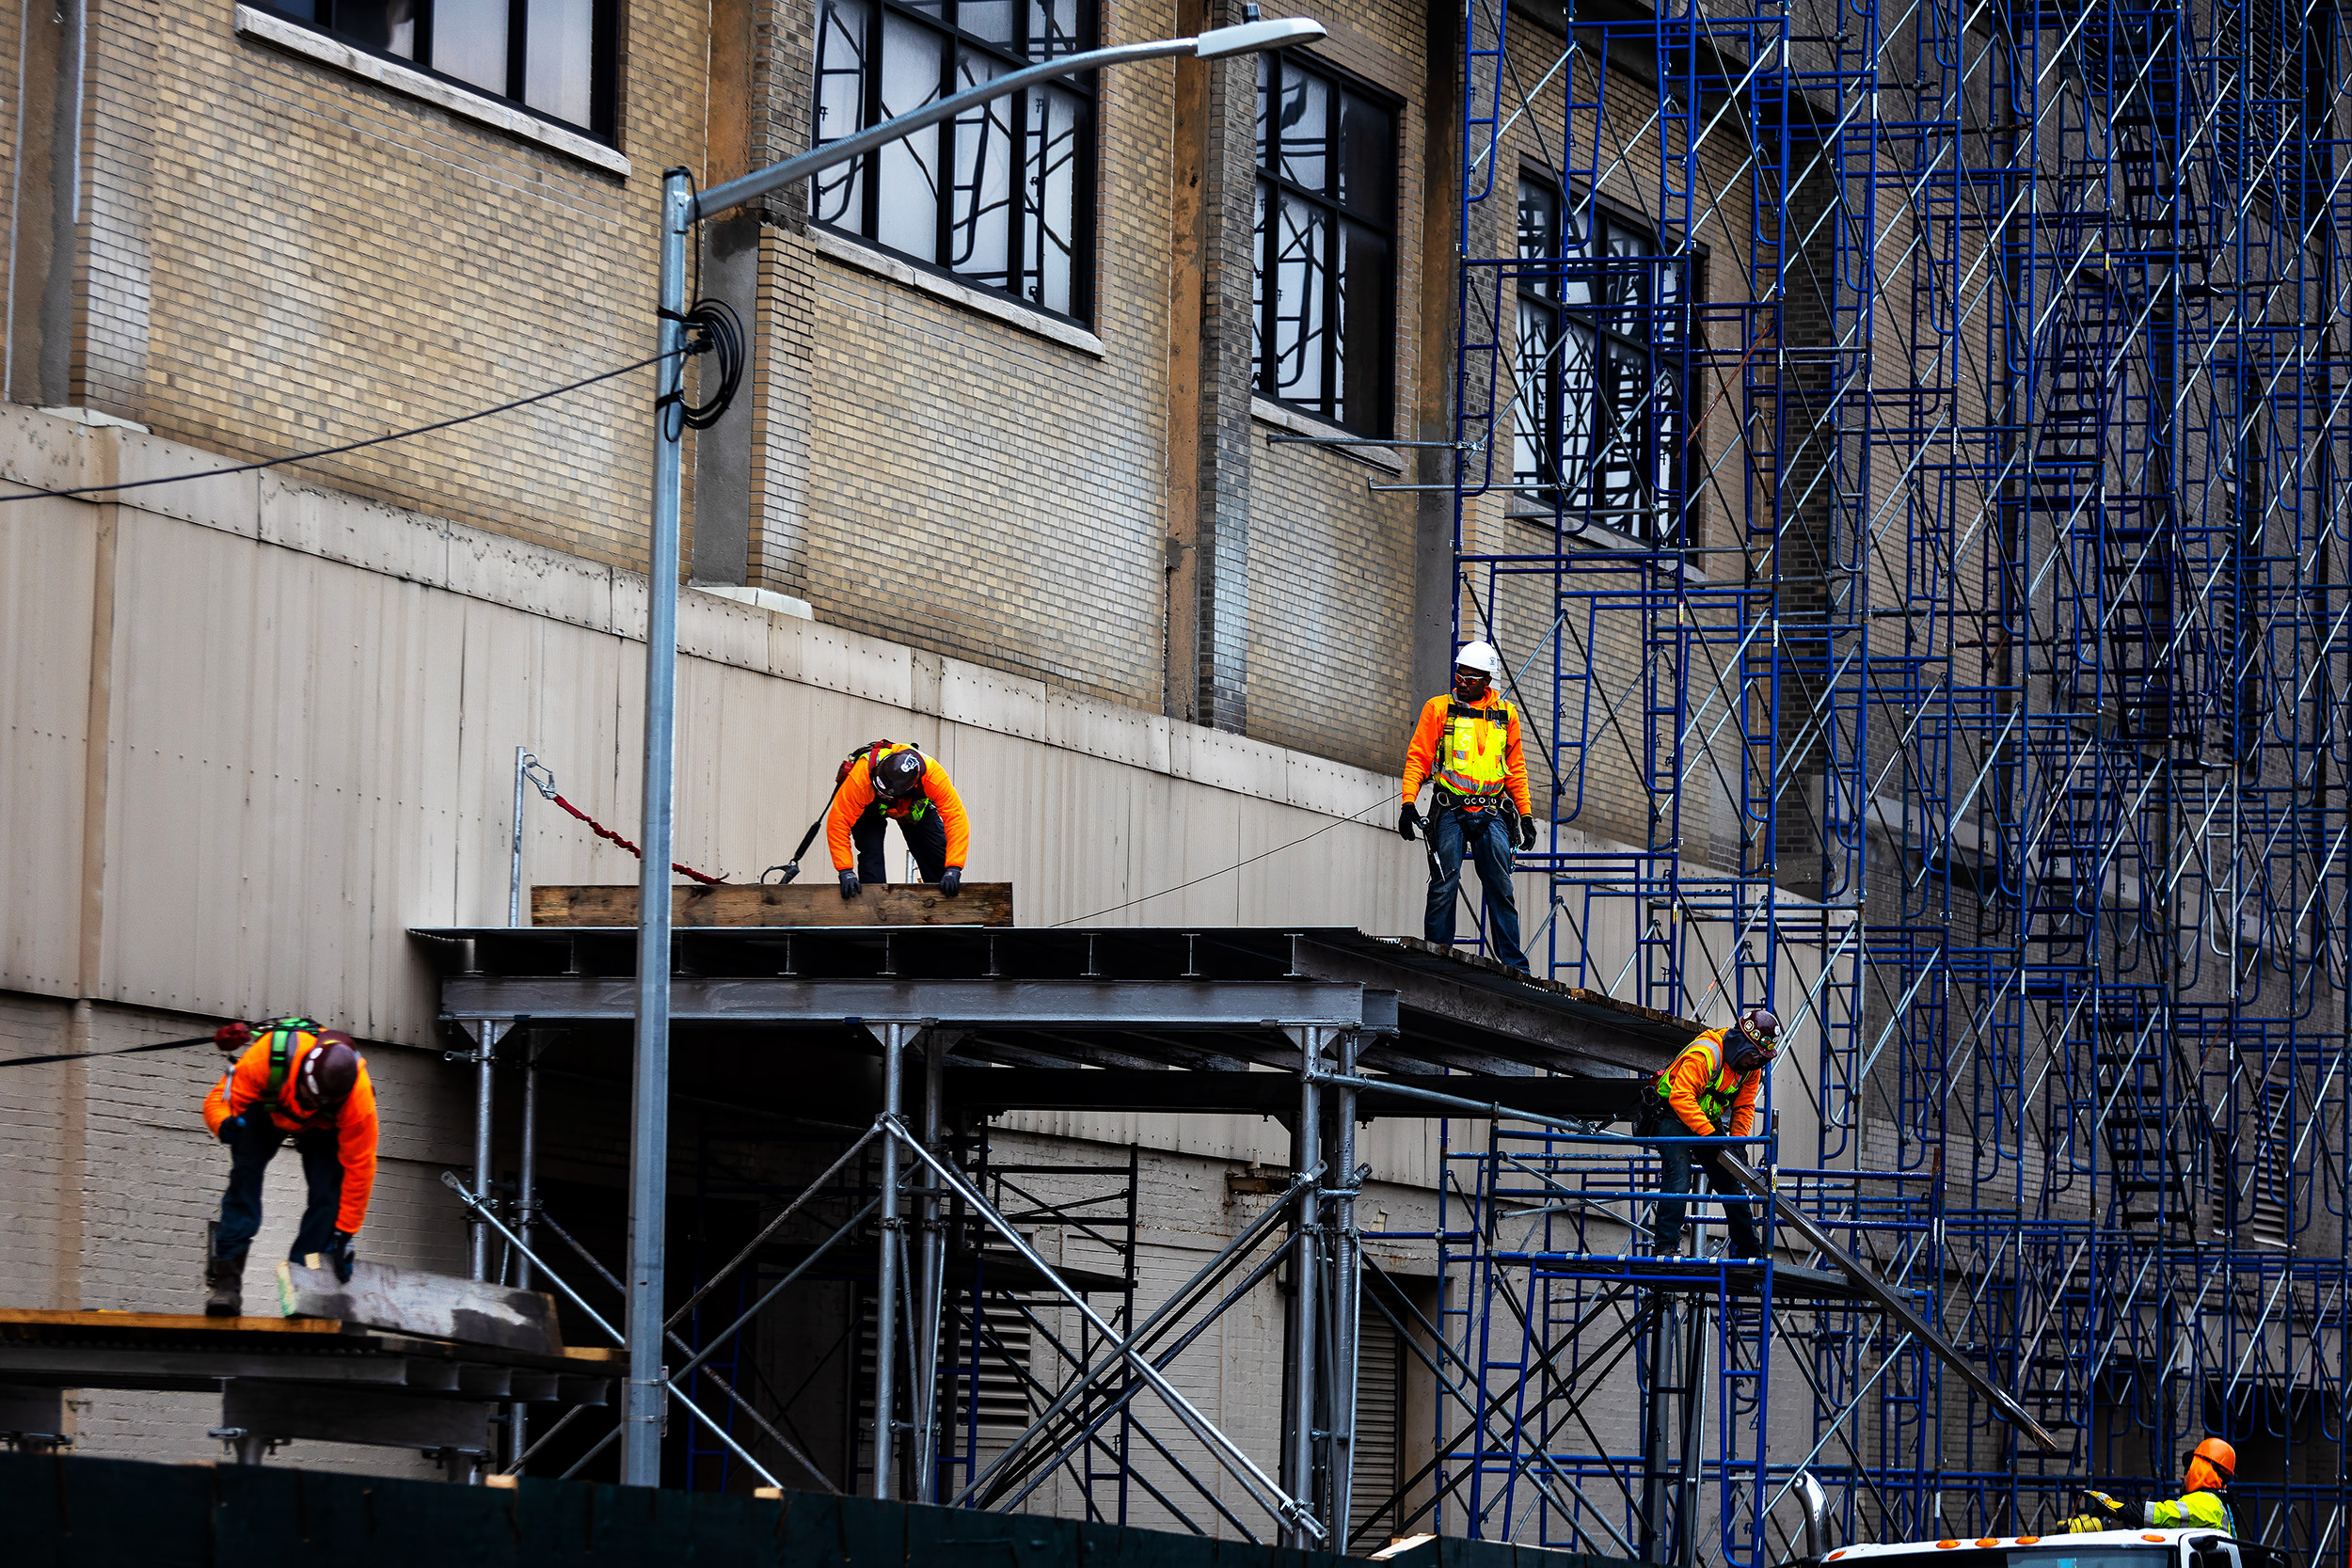 Construction workers putting up scaffold on the outside of the St. John Terminal In Manhattan, New York. Google has confirmed to expand their workforce by 7,000 workers and to add a $1 billion campus in New York City.